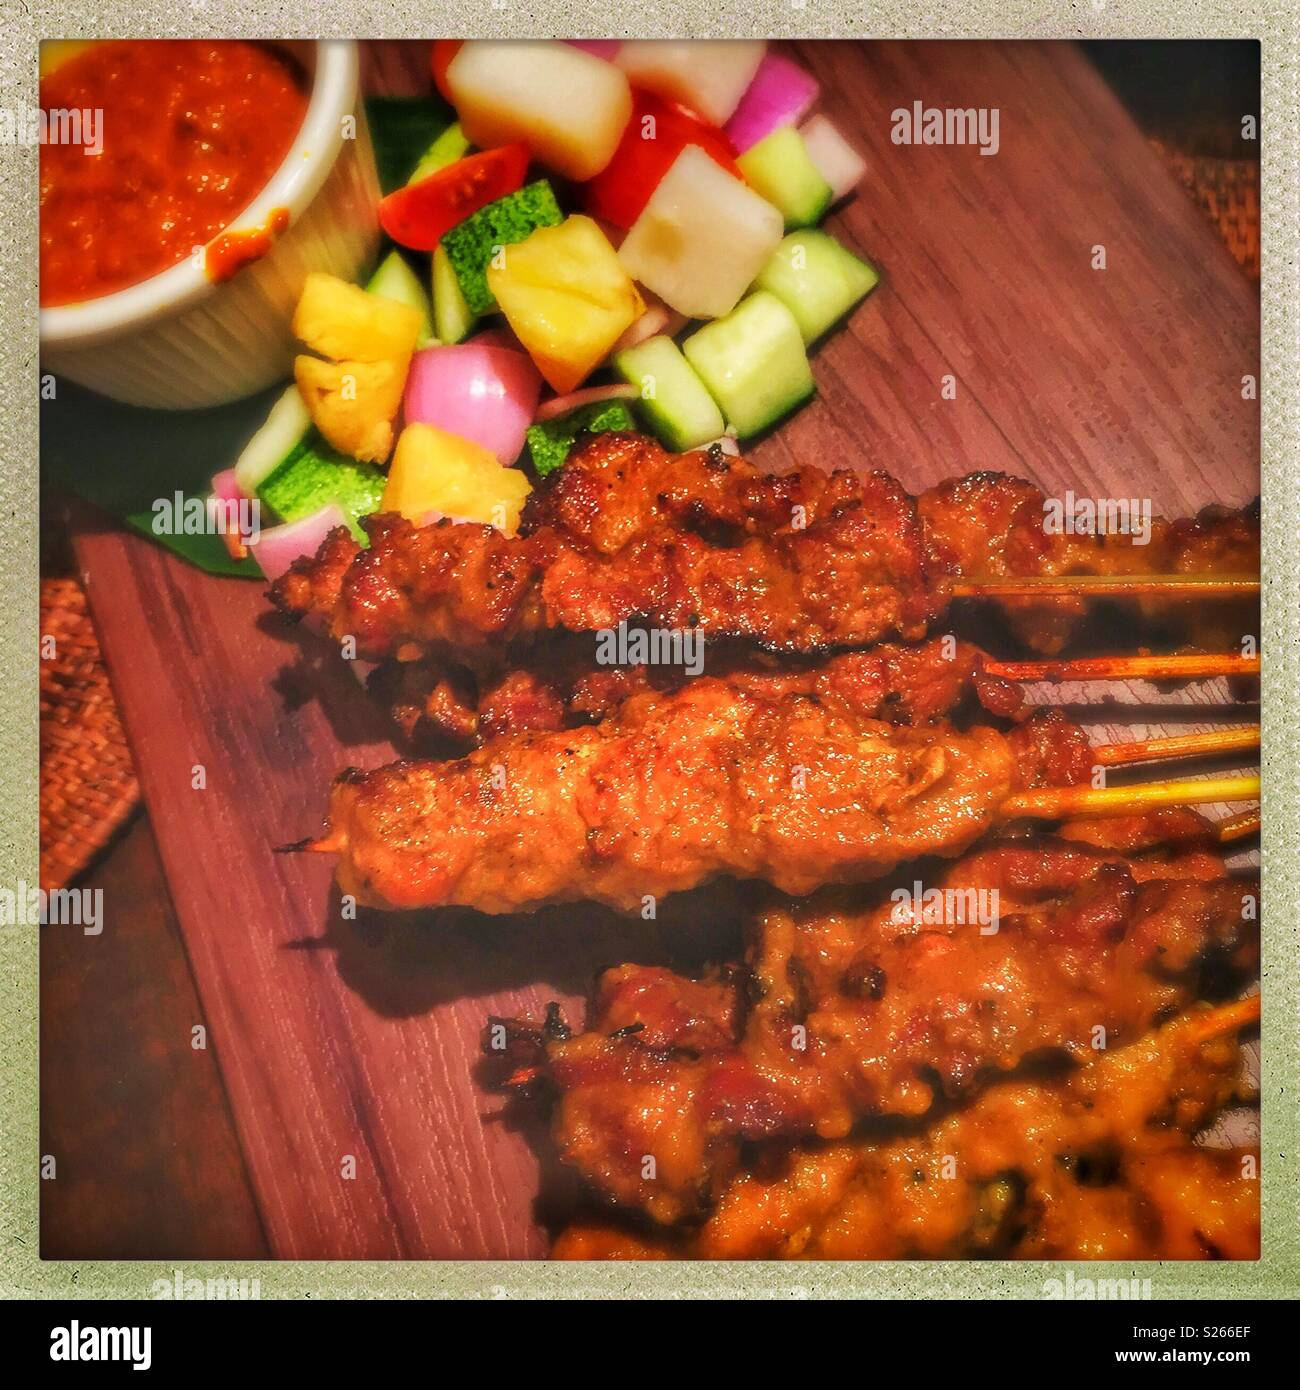 Satay, Bayang Restaurant, Riverside Point, Clarke Quay, Singapore - Stock Image